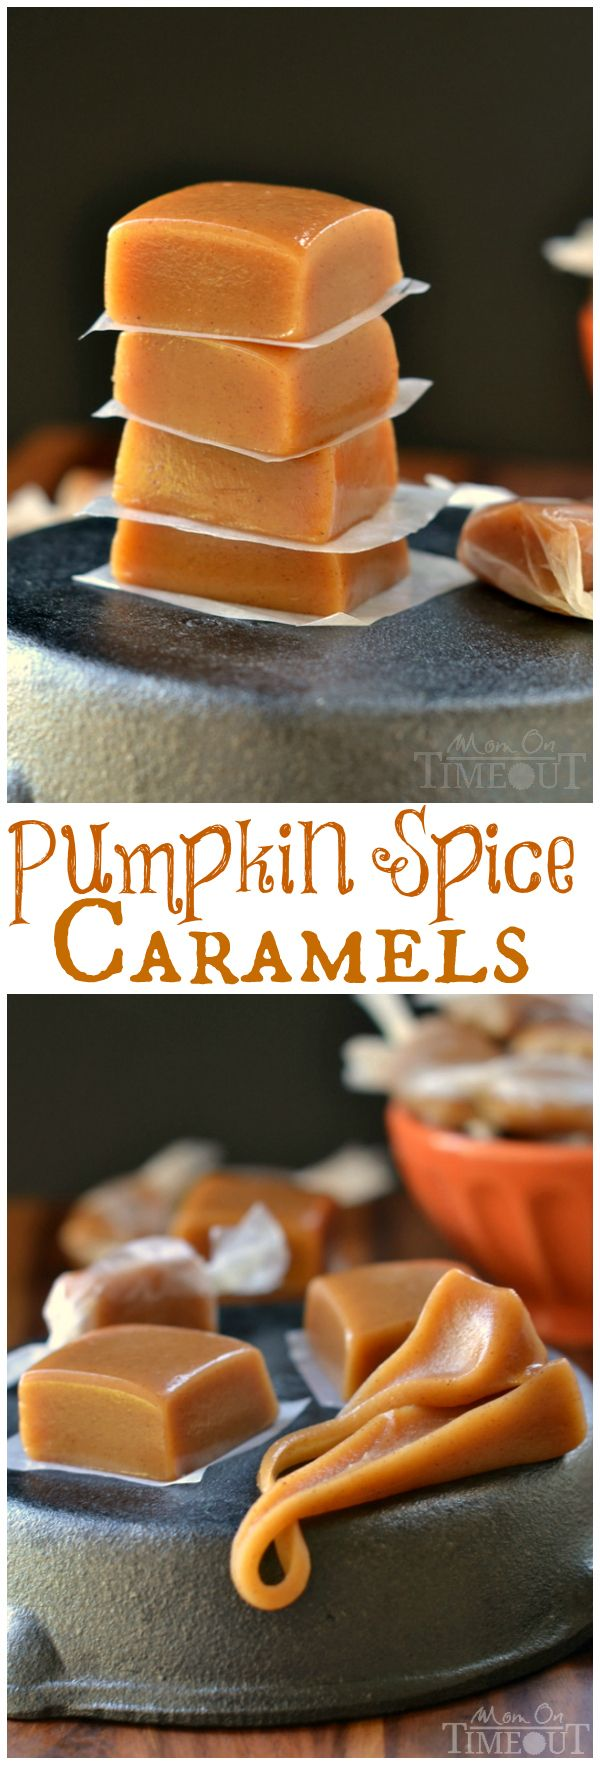 Soft, chewy, buttery, and perfectly spiced, these Pumpkin Spice Caramels are impossible to resist.